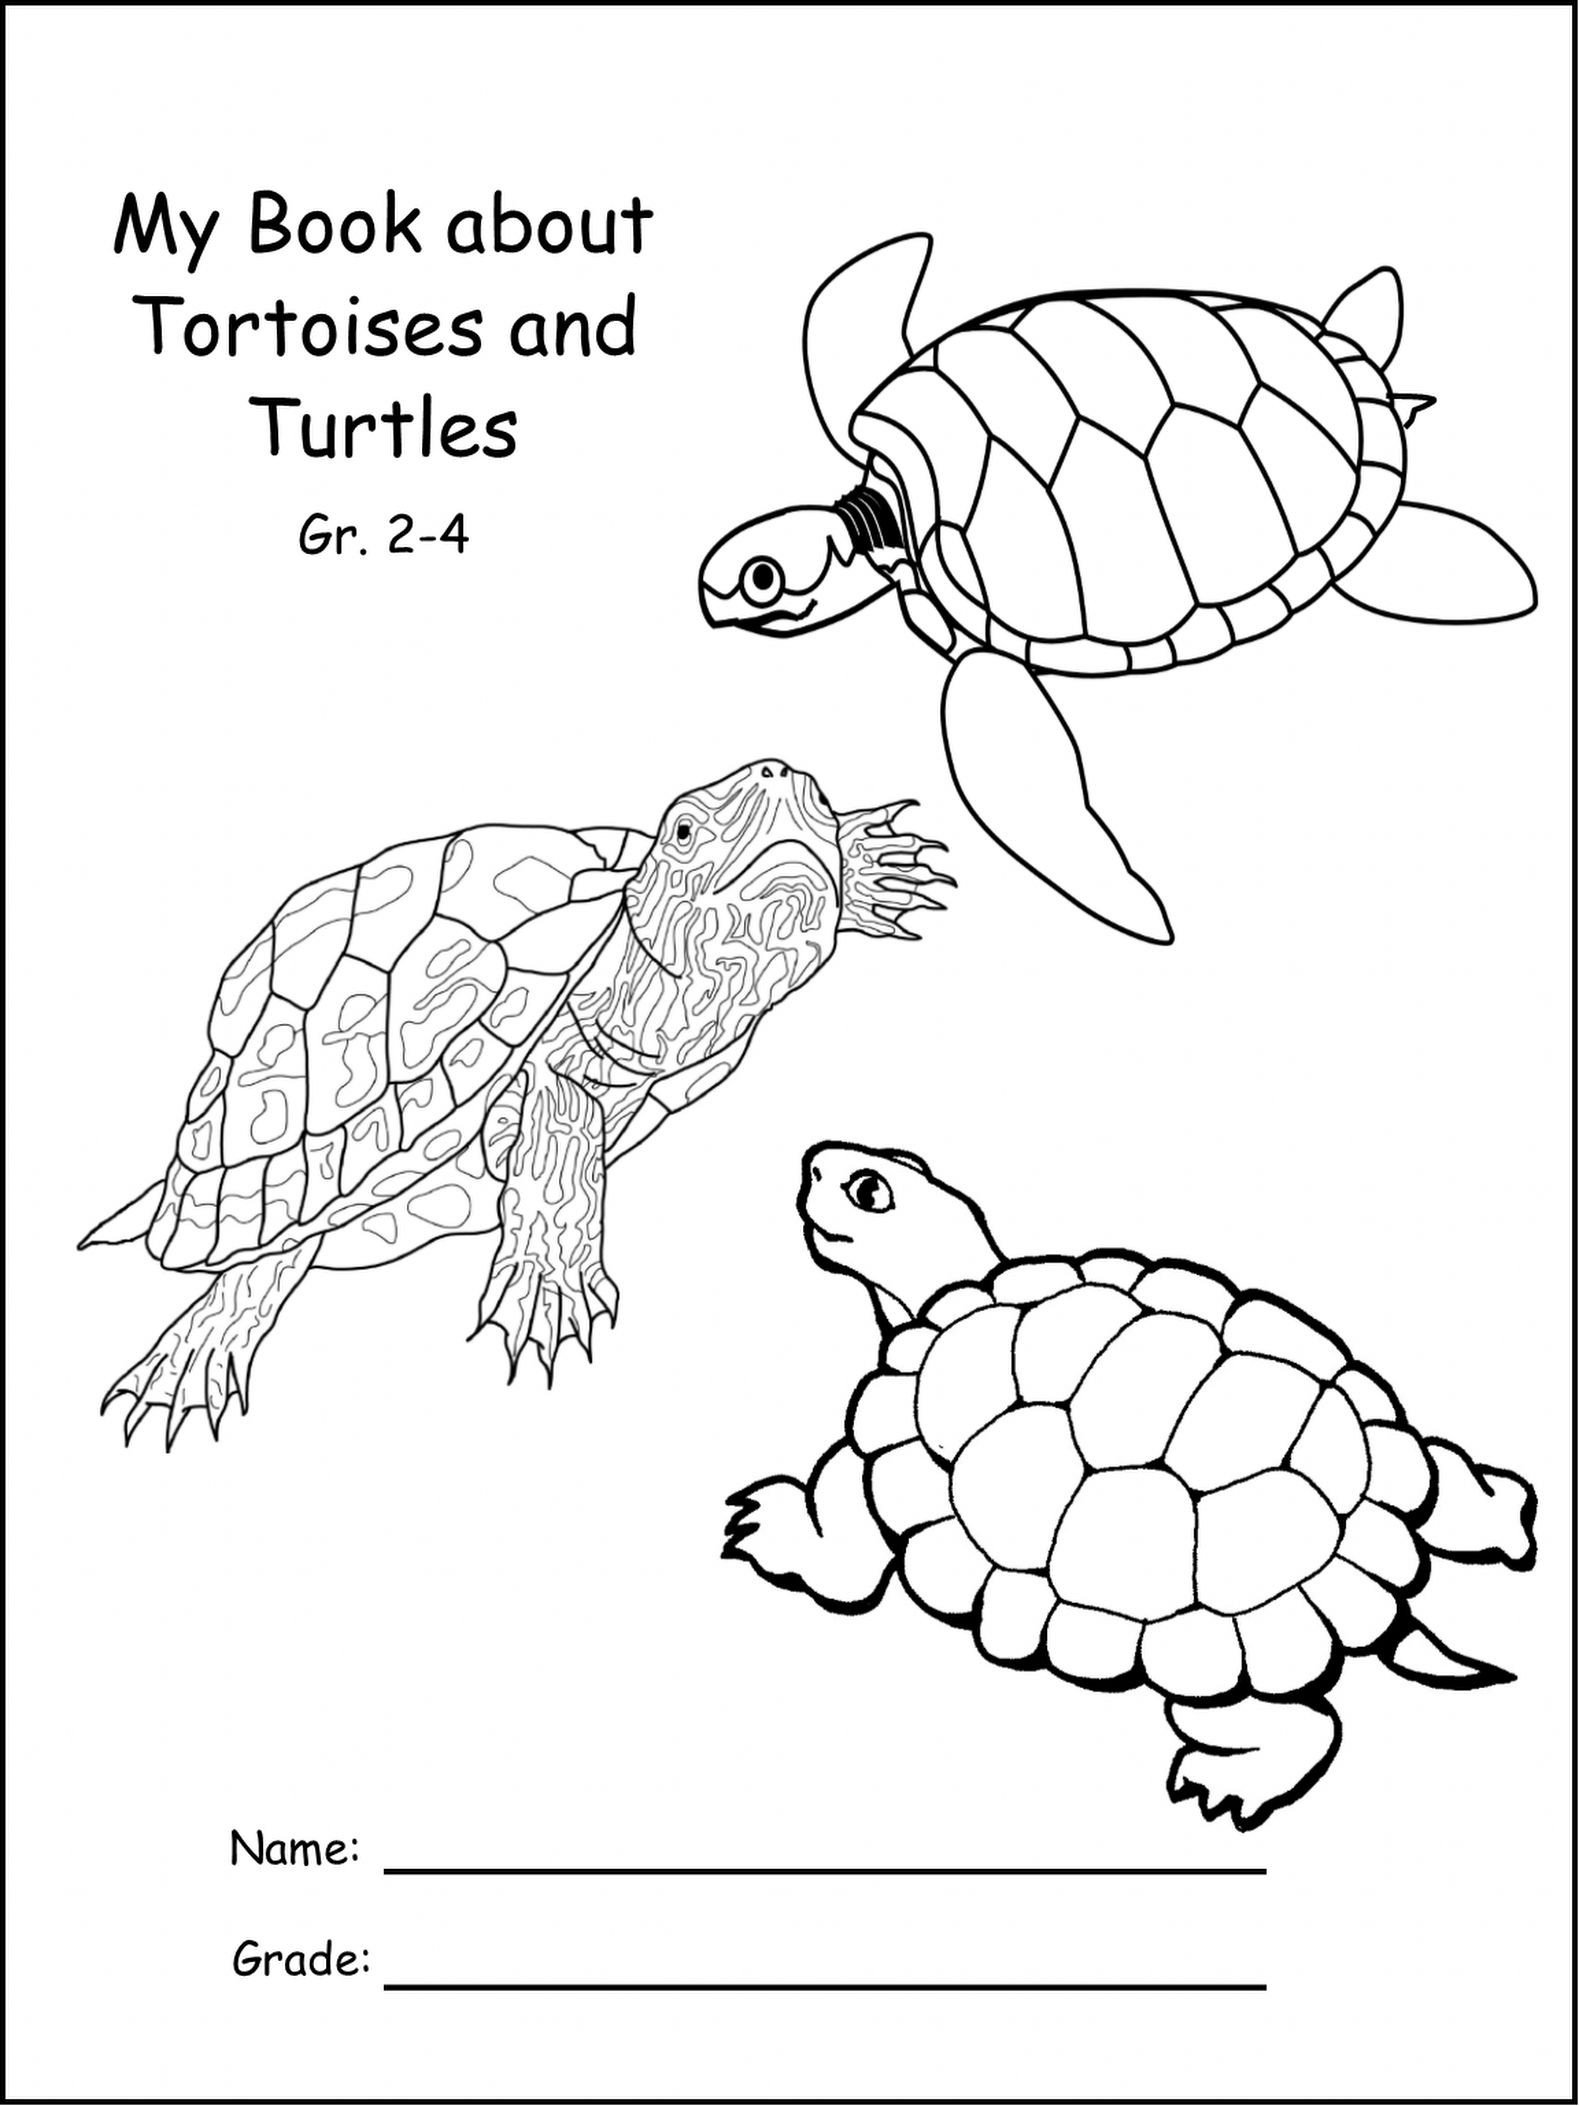 Reptile Worksheets for Kindergarten Differences Between Sea Turtles and Land tortoises with